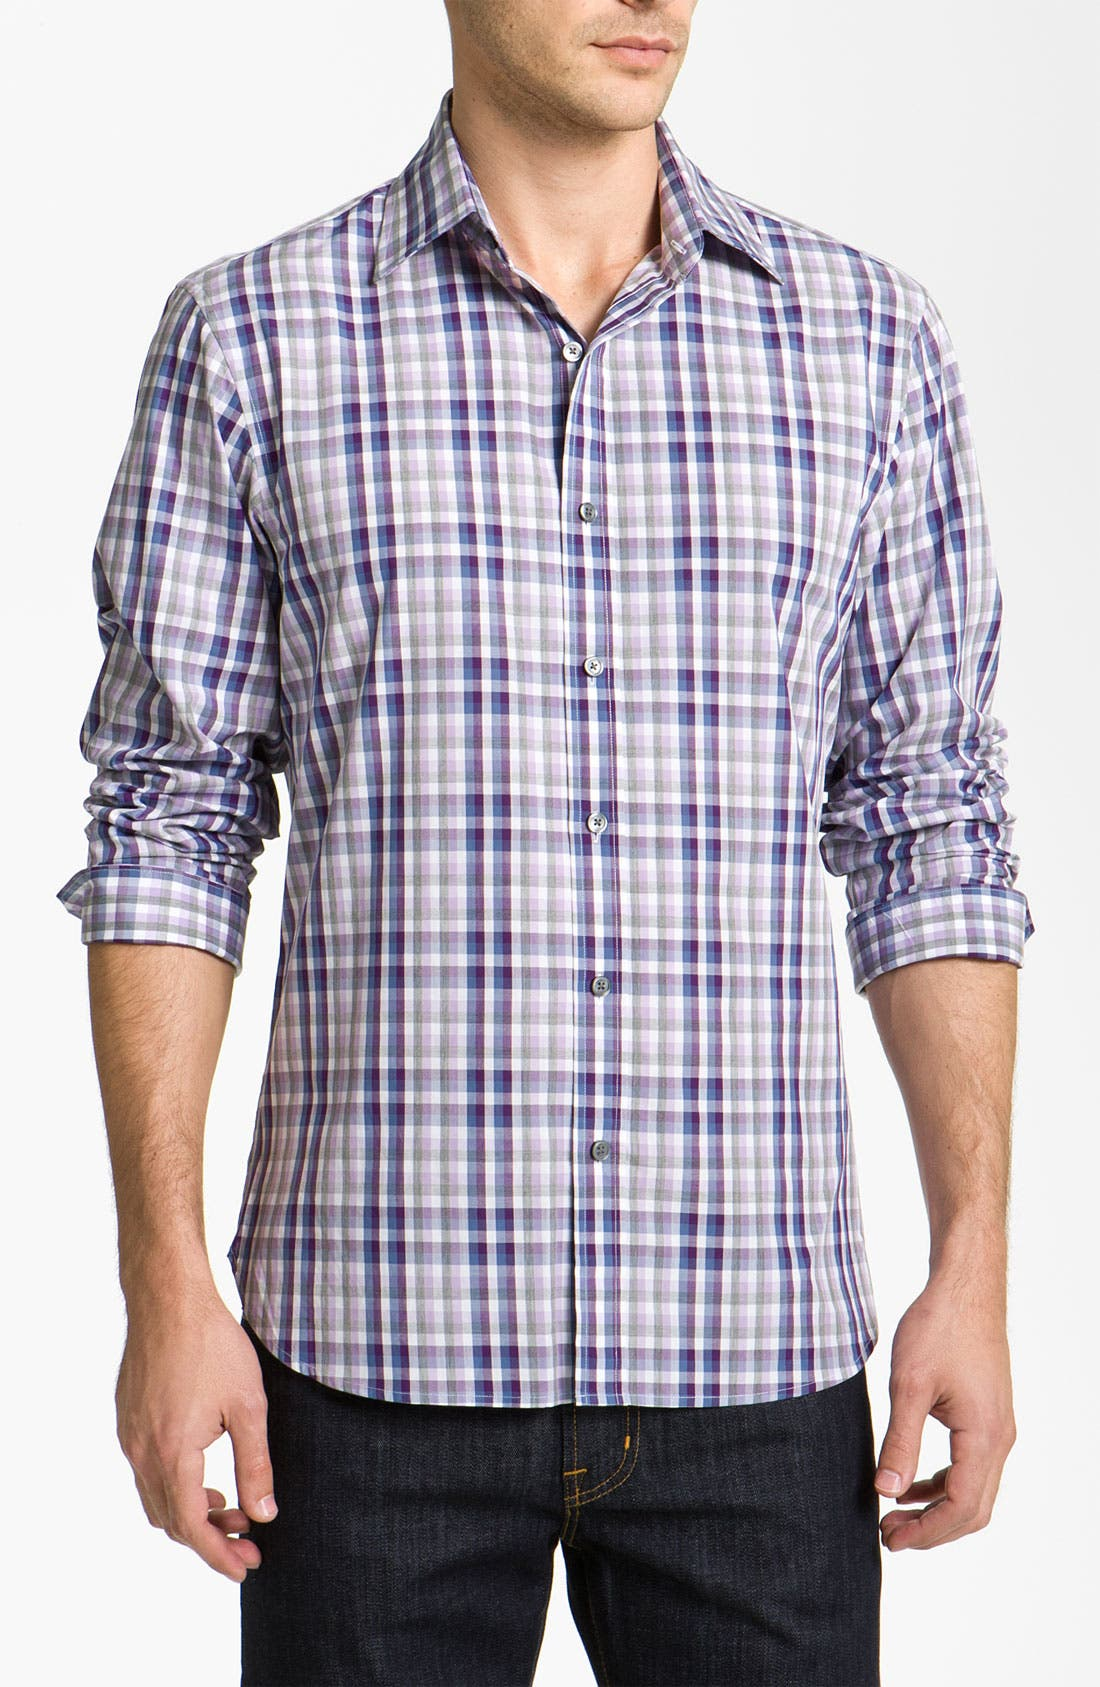 Alternate Image 1 Selected - Michael Kors 'Rhodes' Check Woven Shirt